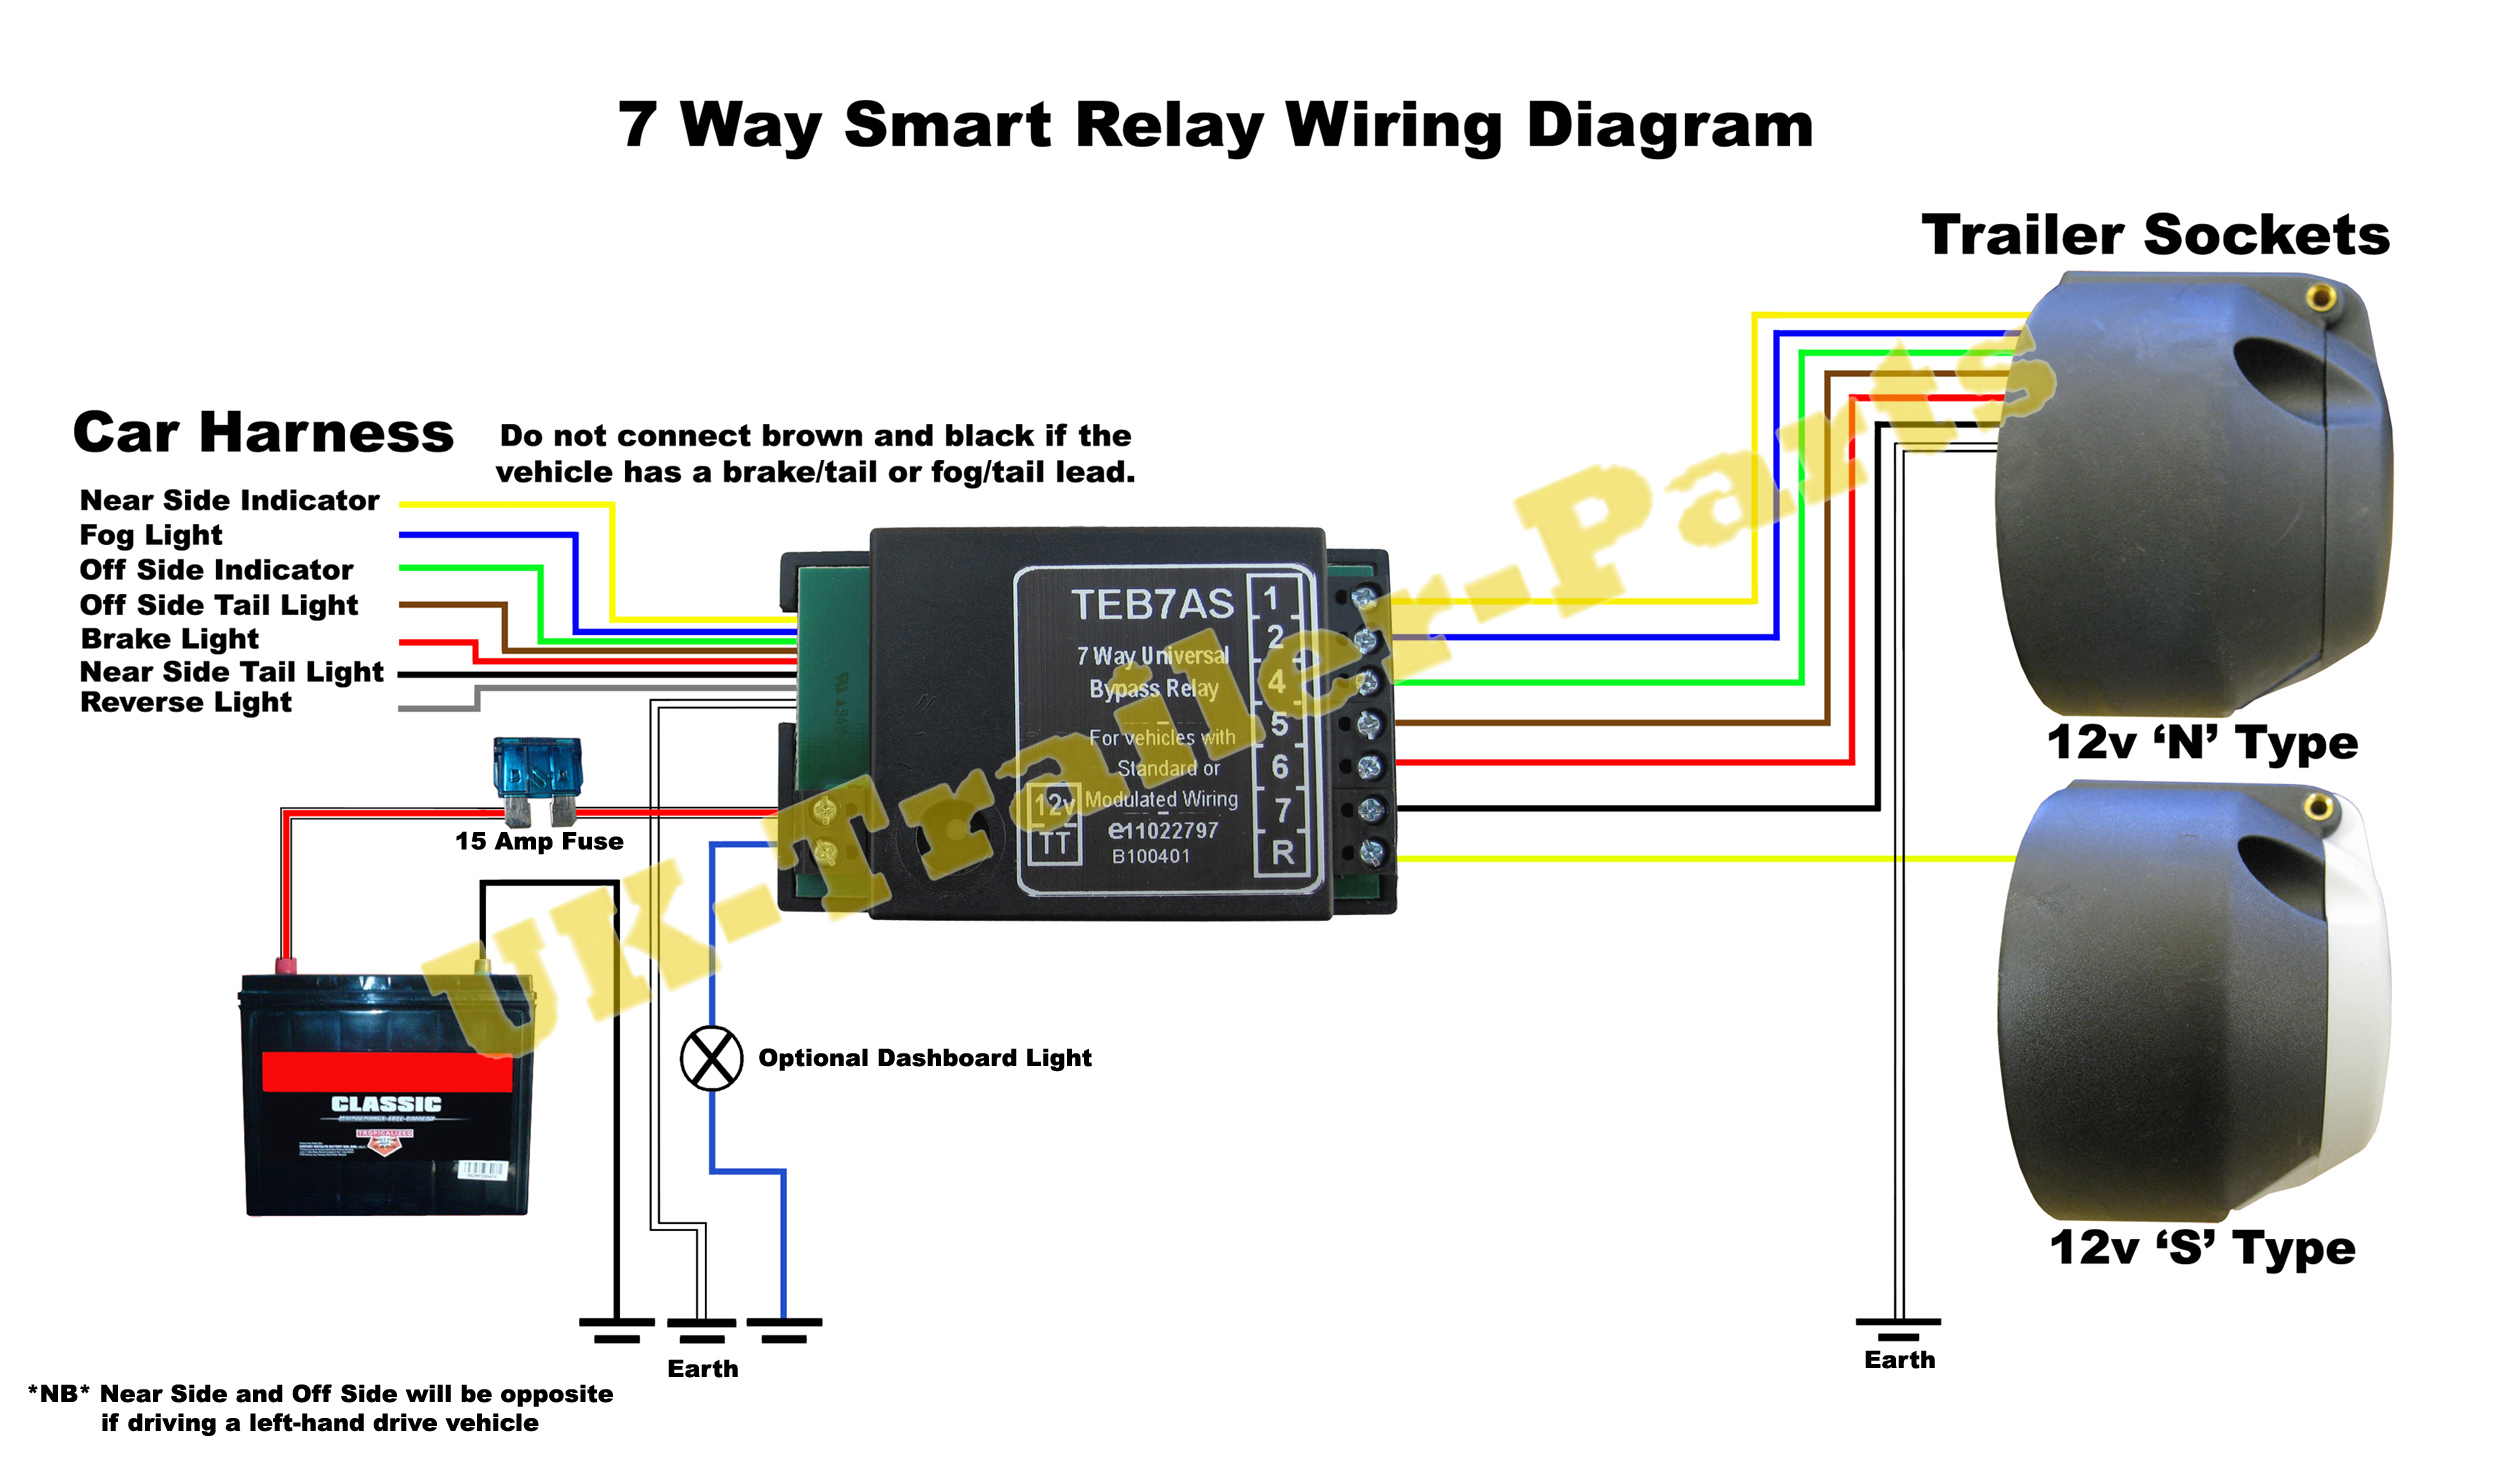 way universal bypass relay wiring diagram uk trailer parts 7 way universal bypass relay wiring diagram